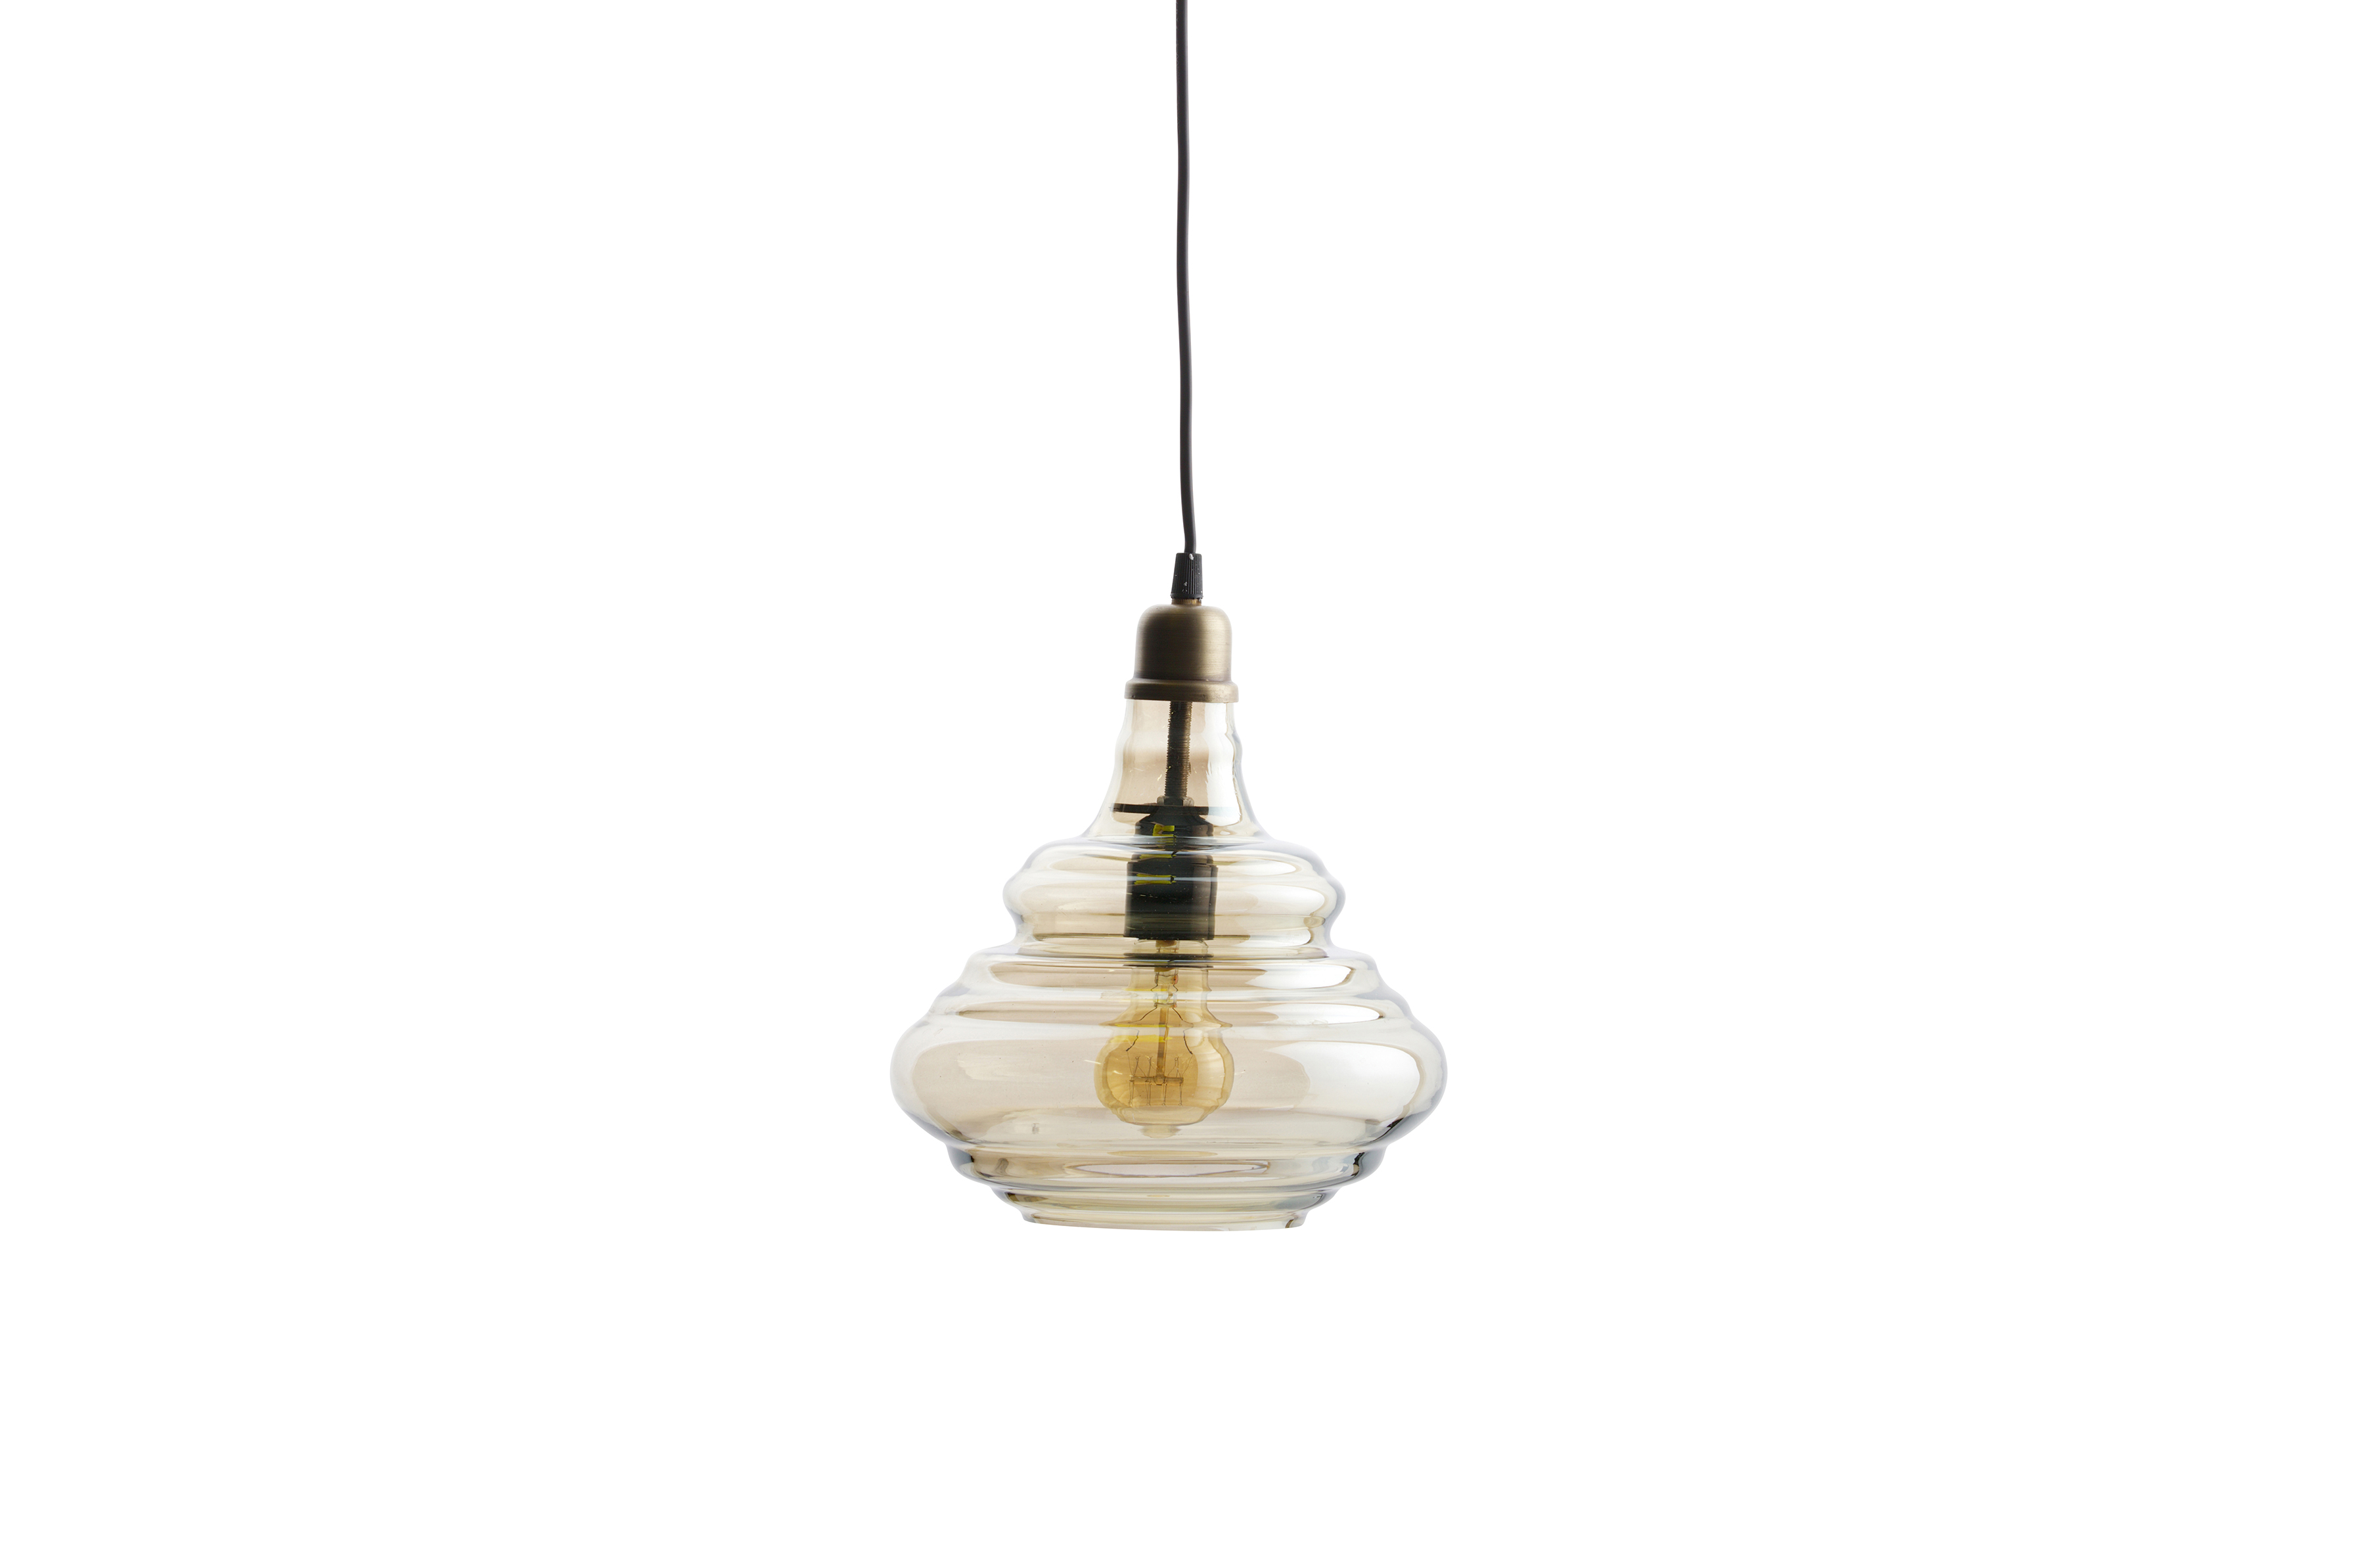 Hanglamp 5 Lampen : Pure vintage hanglamp glas home stock